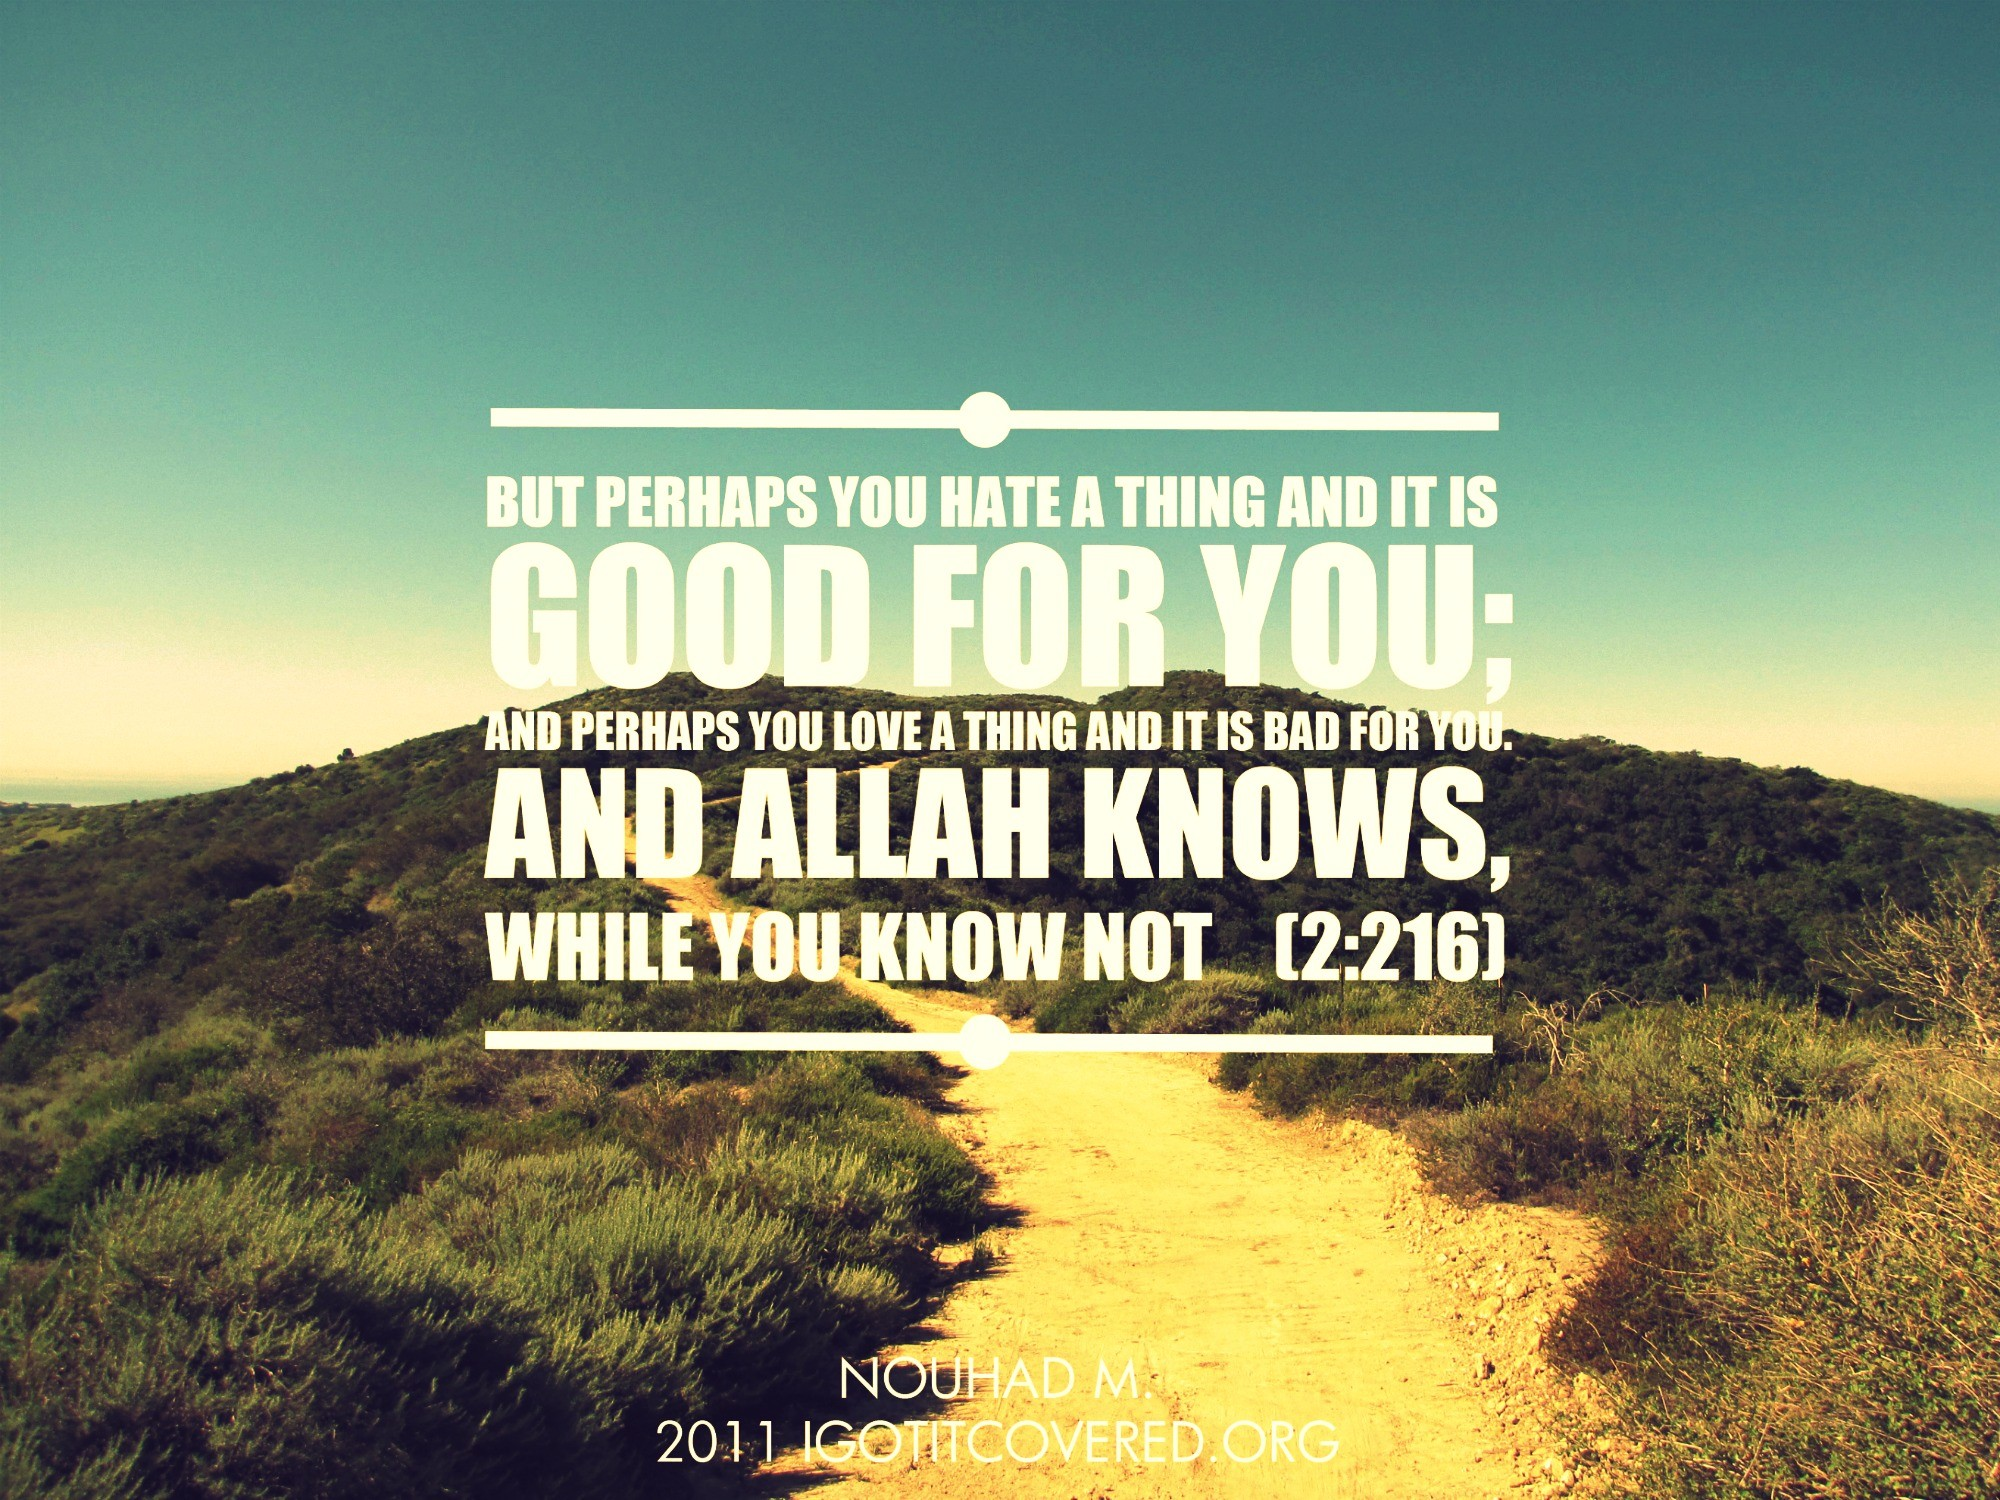 Cool Quote Wallpapers Hd 1920x1080 Islamic Wallpapers Hd 2017 183 ①